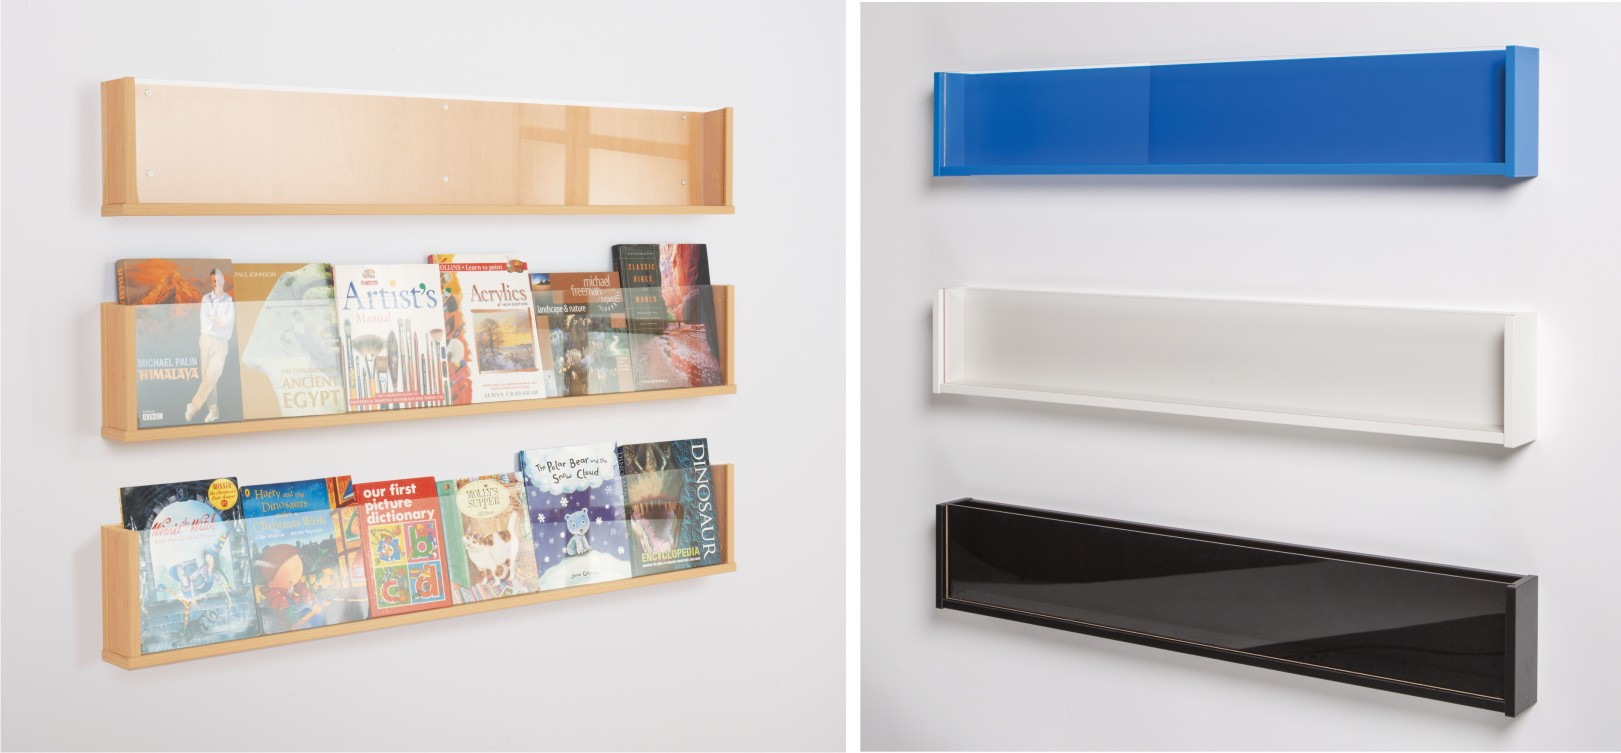 Shelf Style Wall Mounted Literature Display Signs For